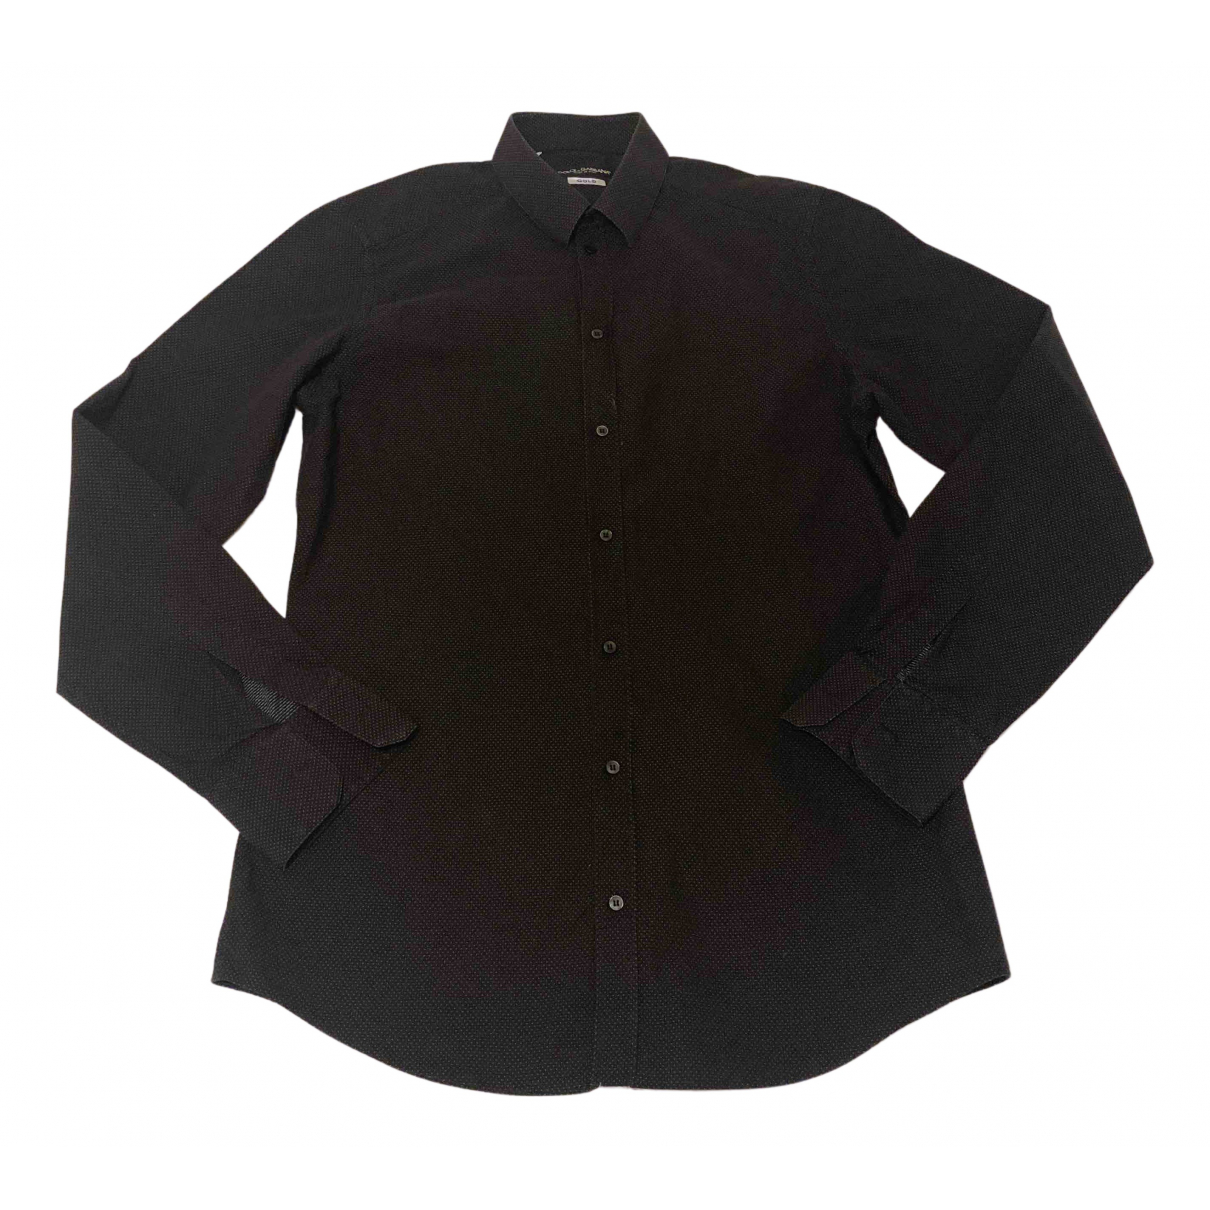 Dolce & Gabbana N Black Cotton Shirts for Men 41 EU (tour de cou / collar)